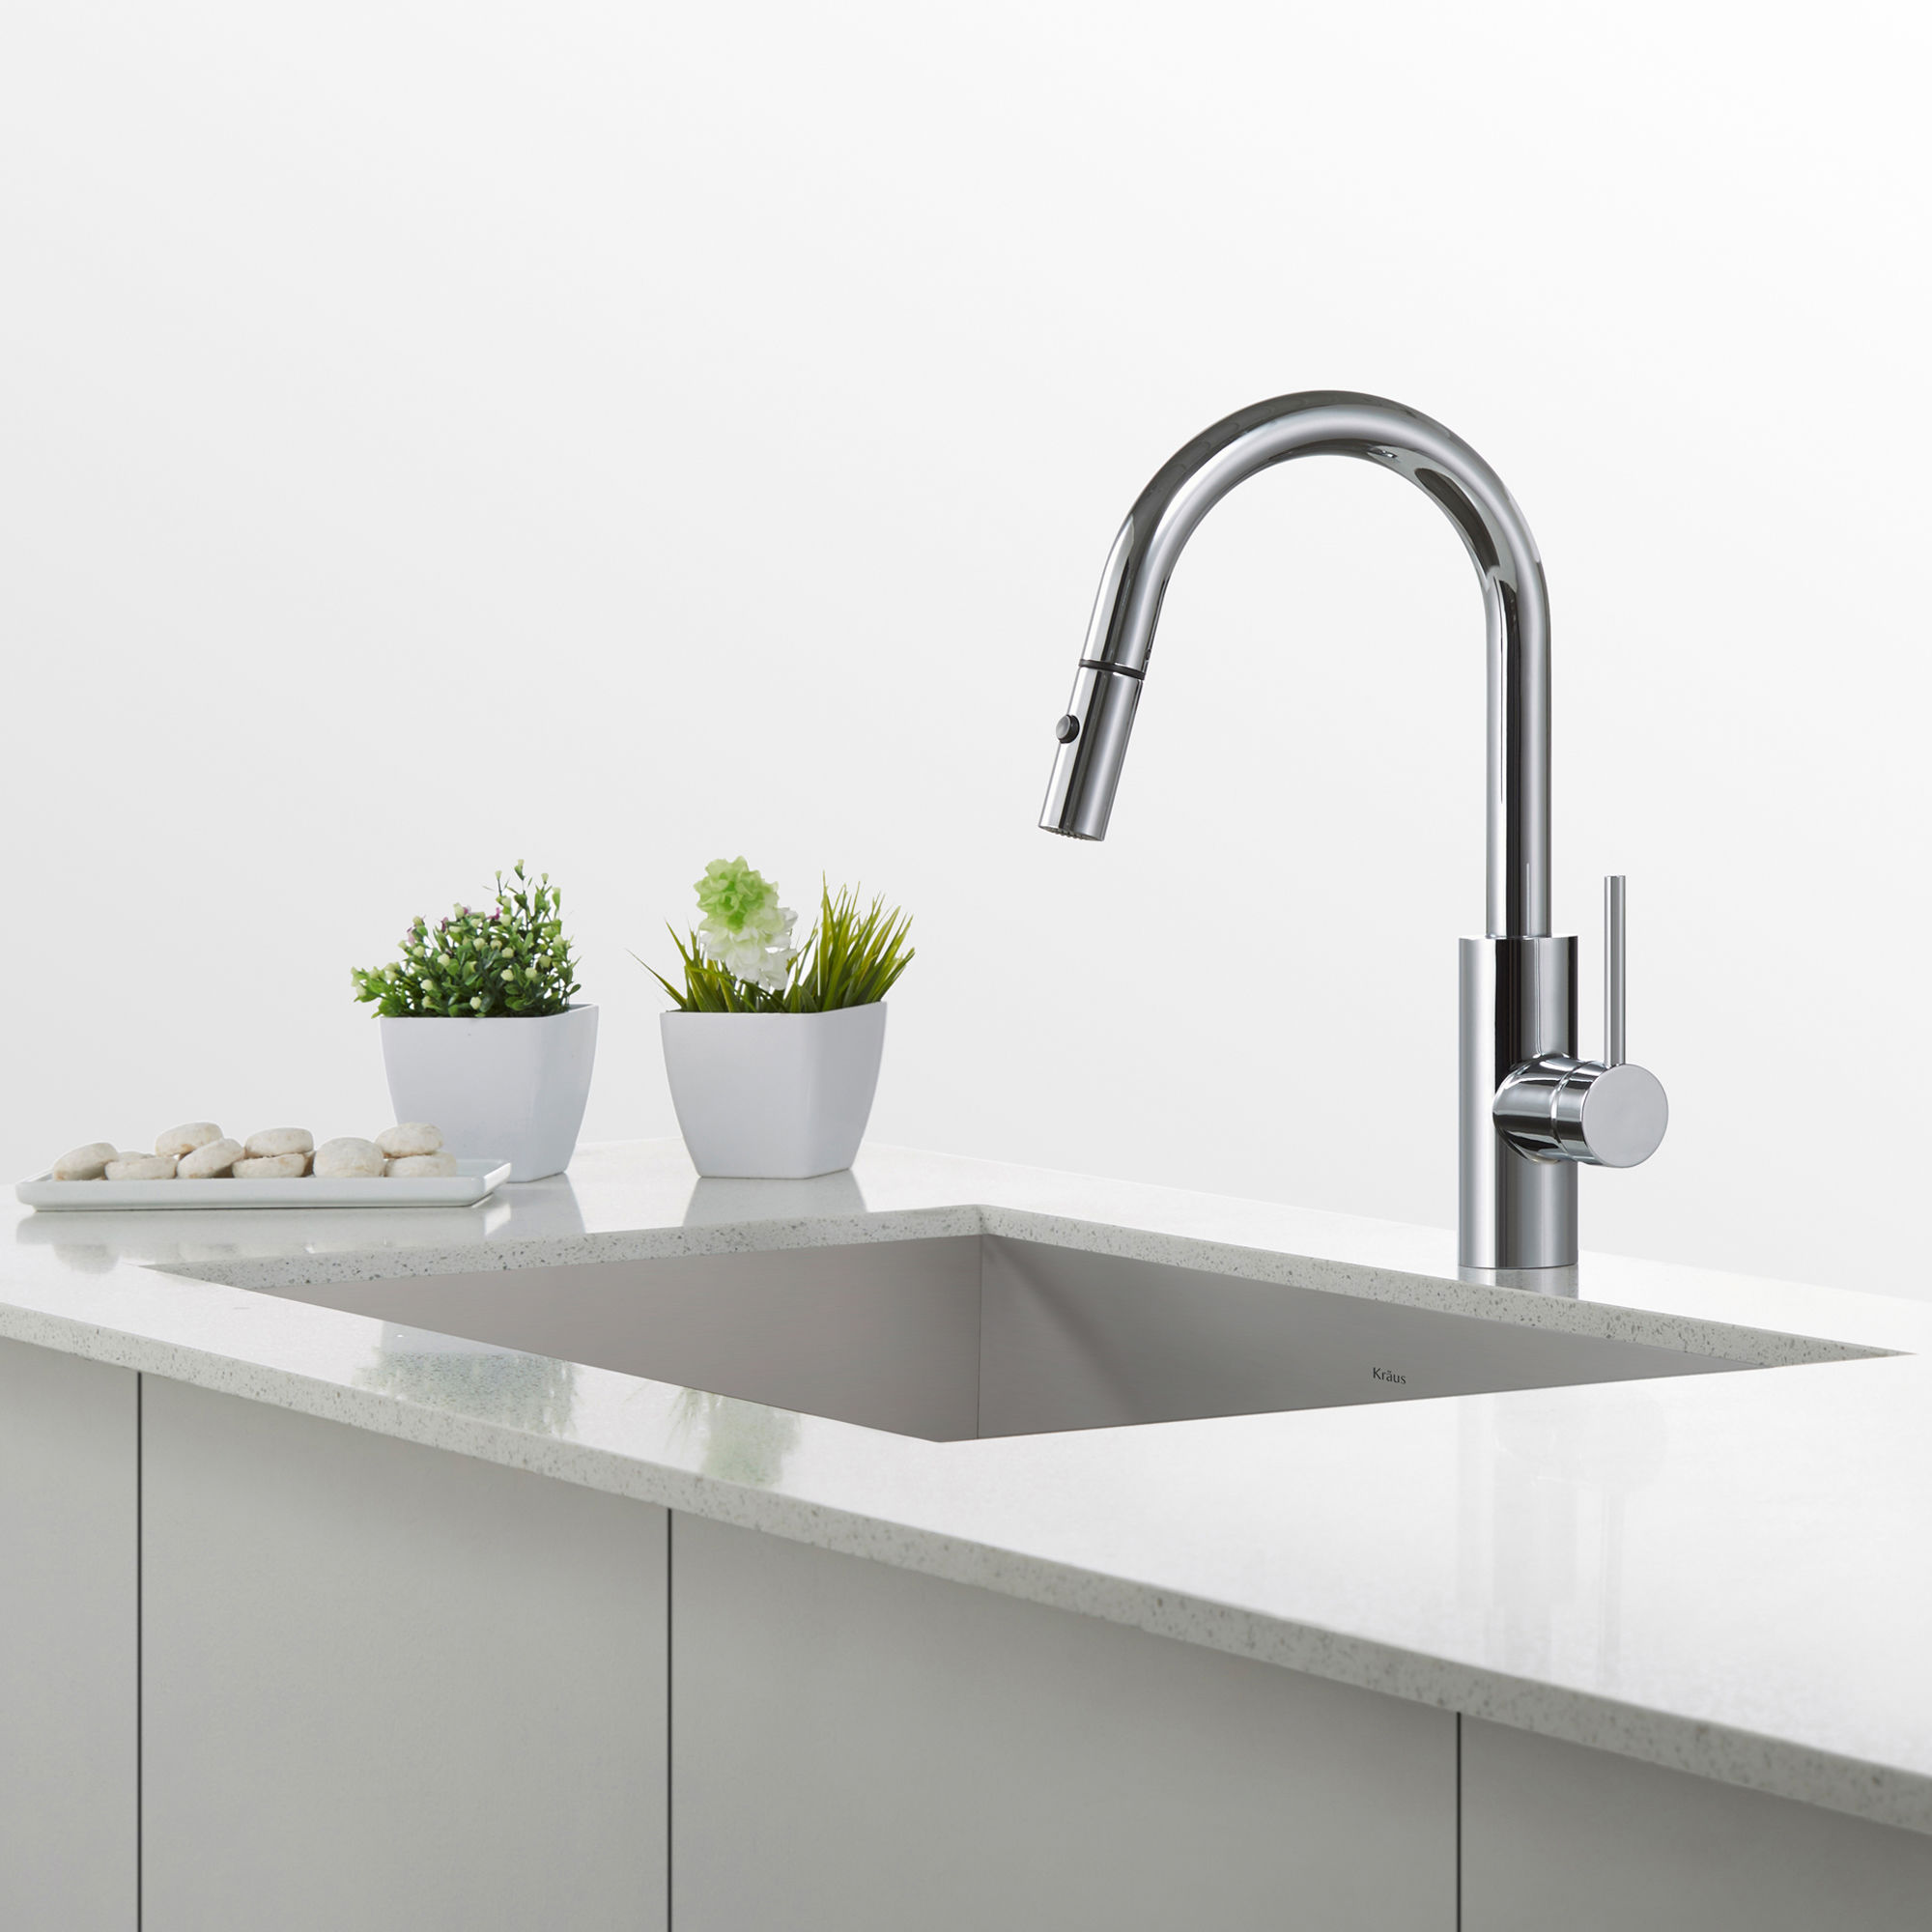 Kraus KPF-2620SS Stainless Steel Oletto Pull Down Kitchen Faucet ...